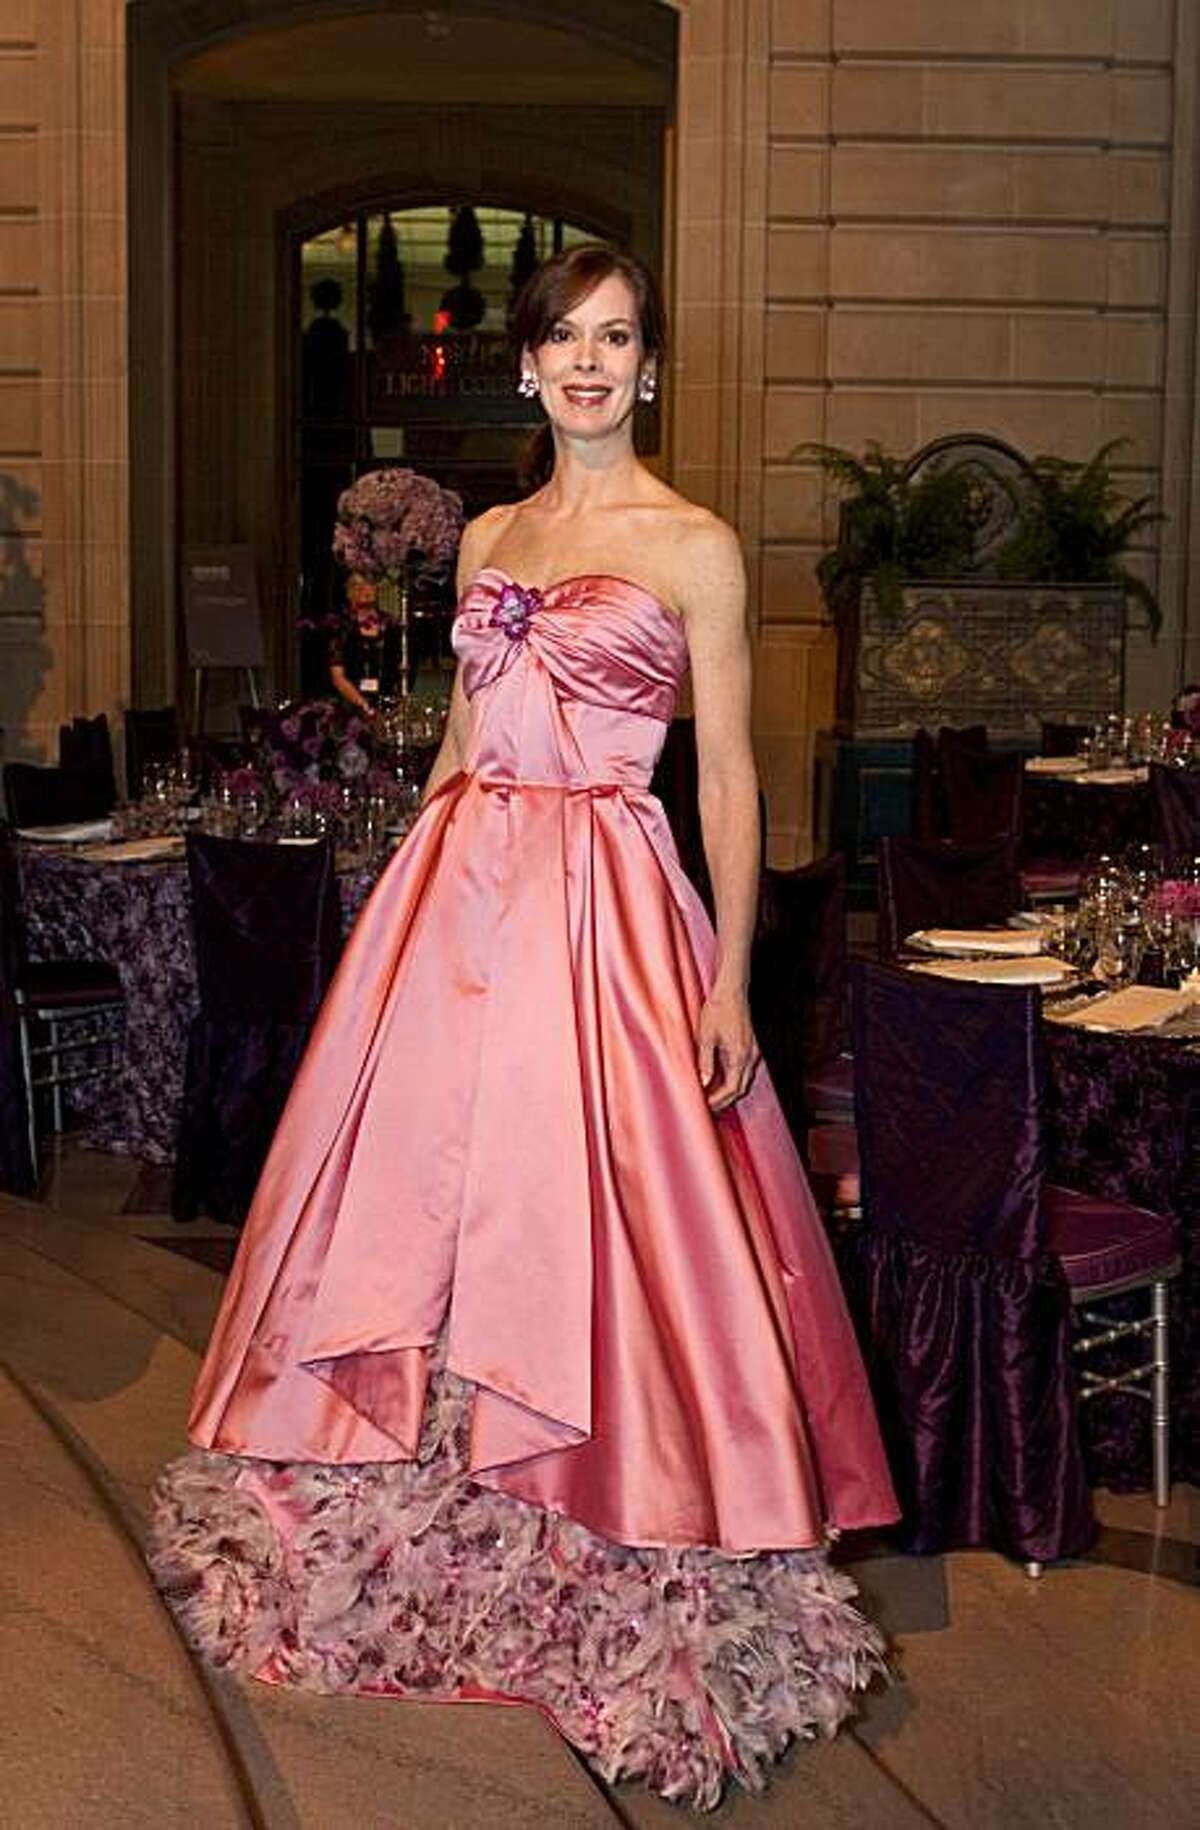 Stephanie Ejabat wears a gown by Norman Ambrose to the San Francisco Ballet 2011 Opening Night Gala at City Hall in San Francisco, Calif., on Wednesday, January 26, 2011.